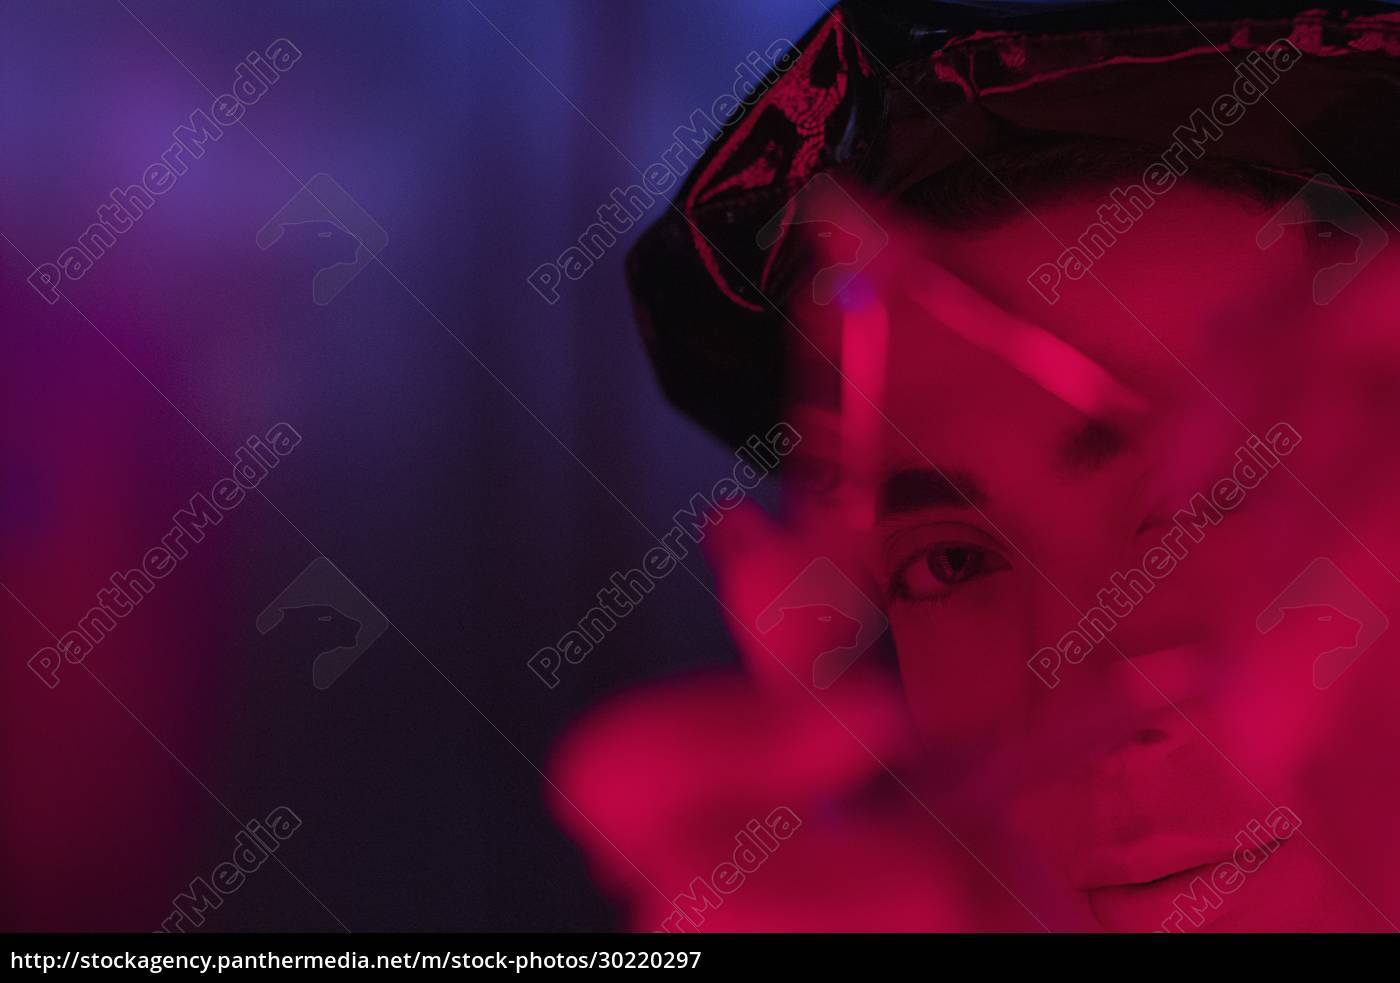 close, up, portrait, young, man, holding - 30220297